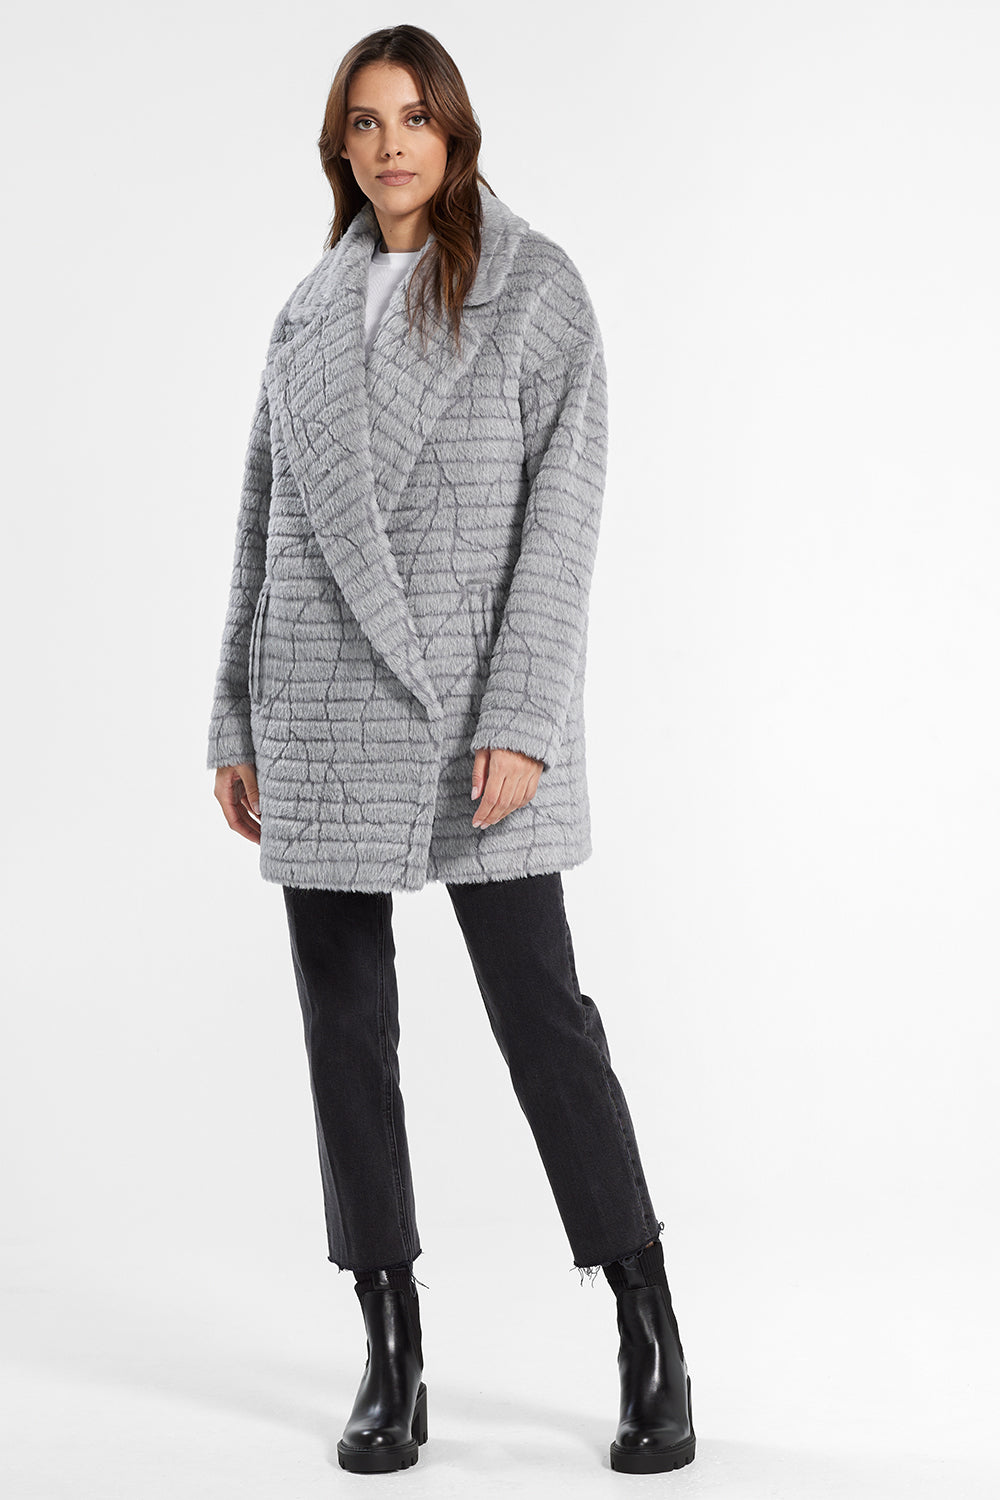 Sentaler Suri Alpaca Mid Length Oversized Notched Collar Coat featured in Suri Alpaca and available in Grey. Seen from front.